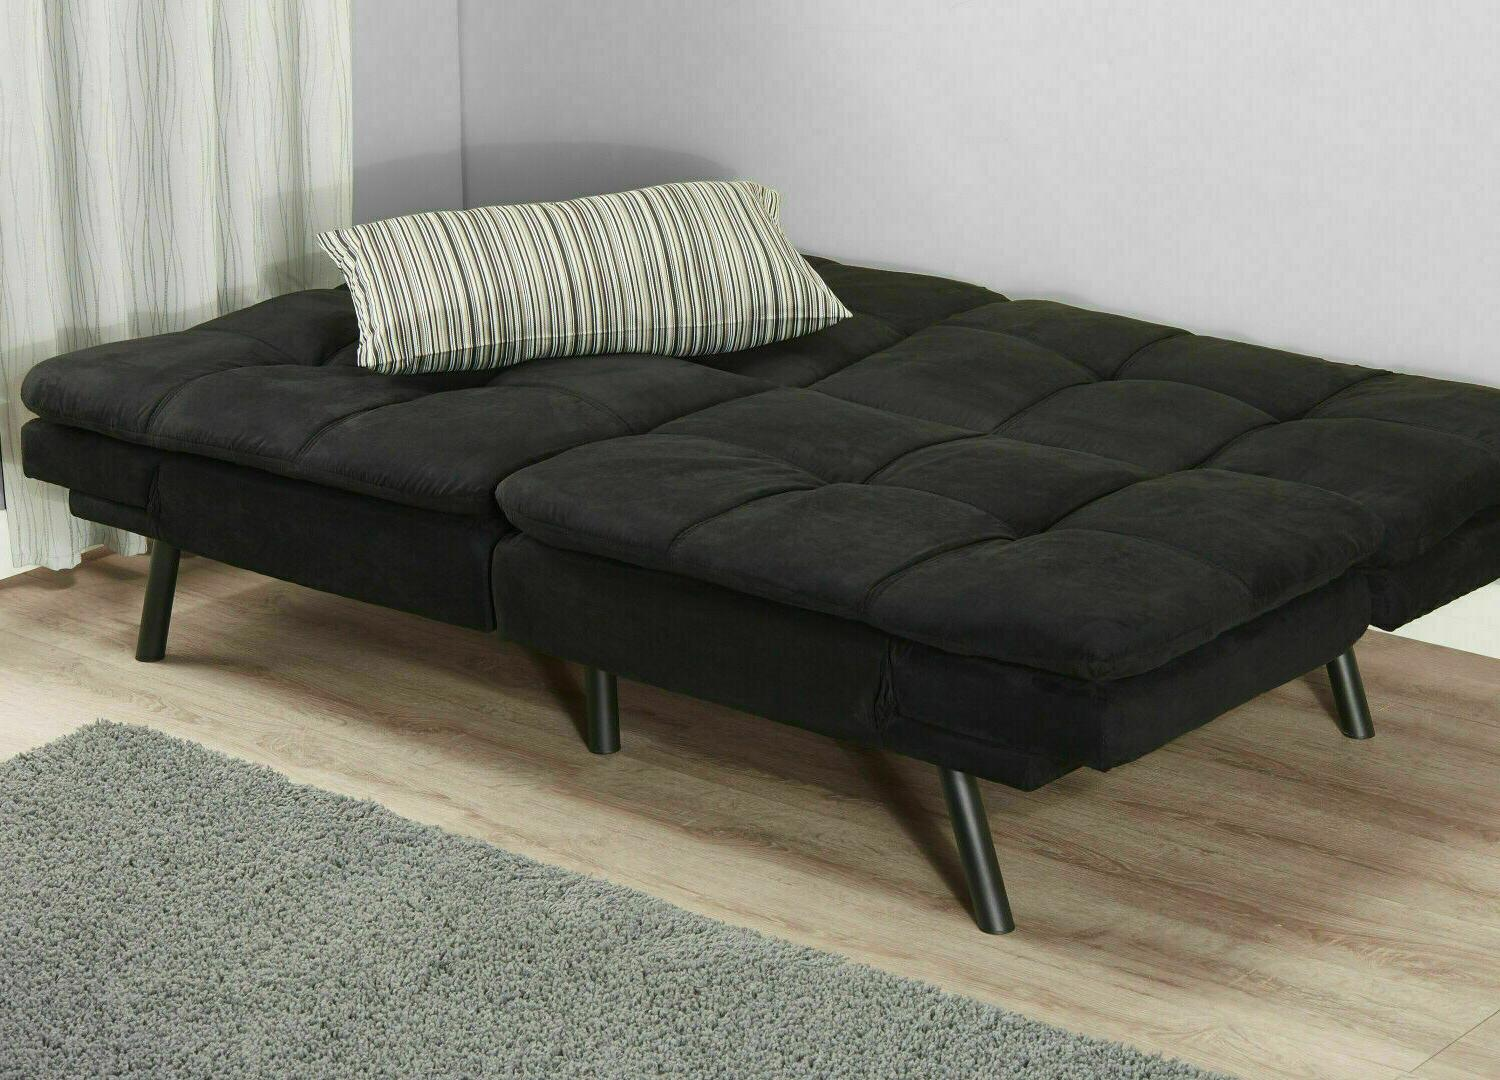 SLEEPER SOFA BED Black Suede Convertible Couch Modern Living Futon Loveseat